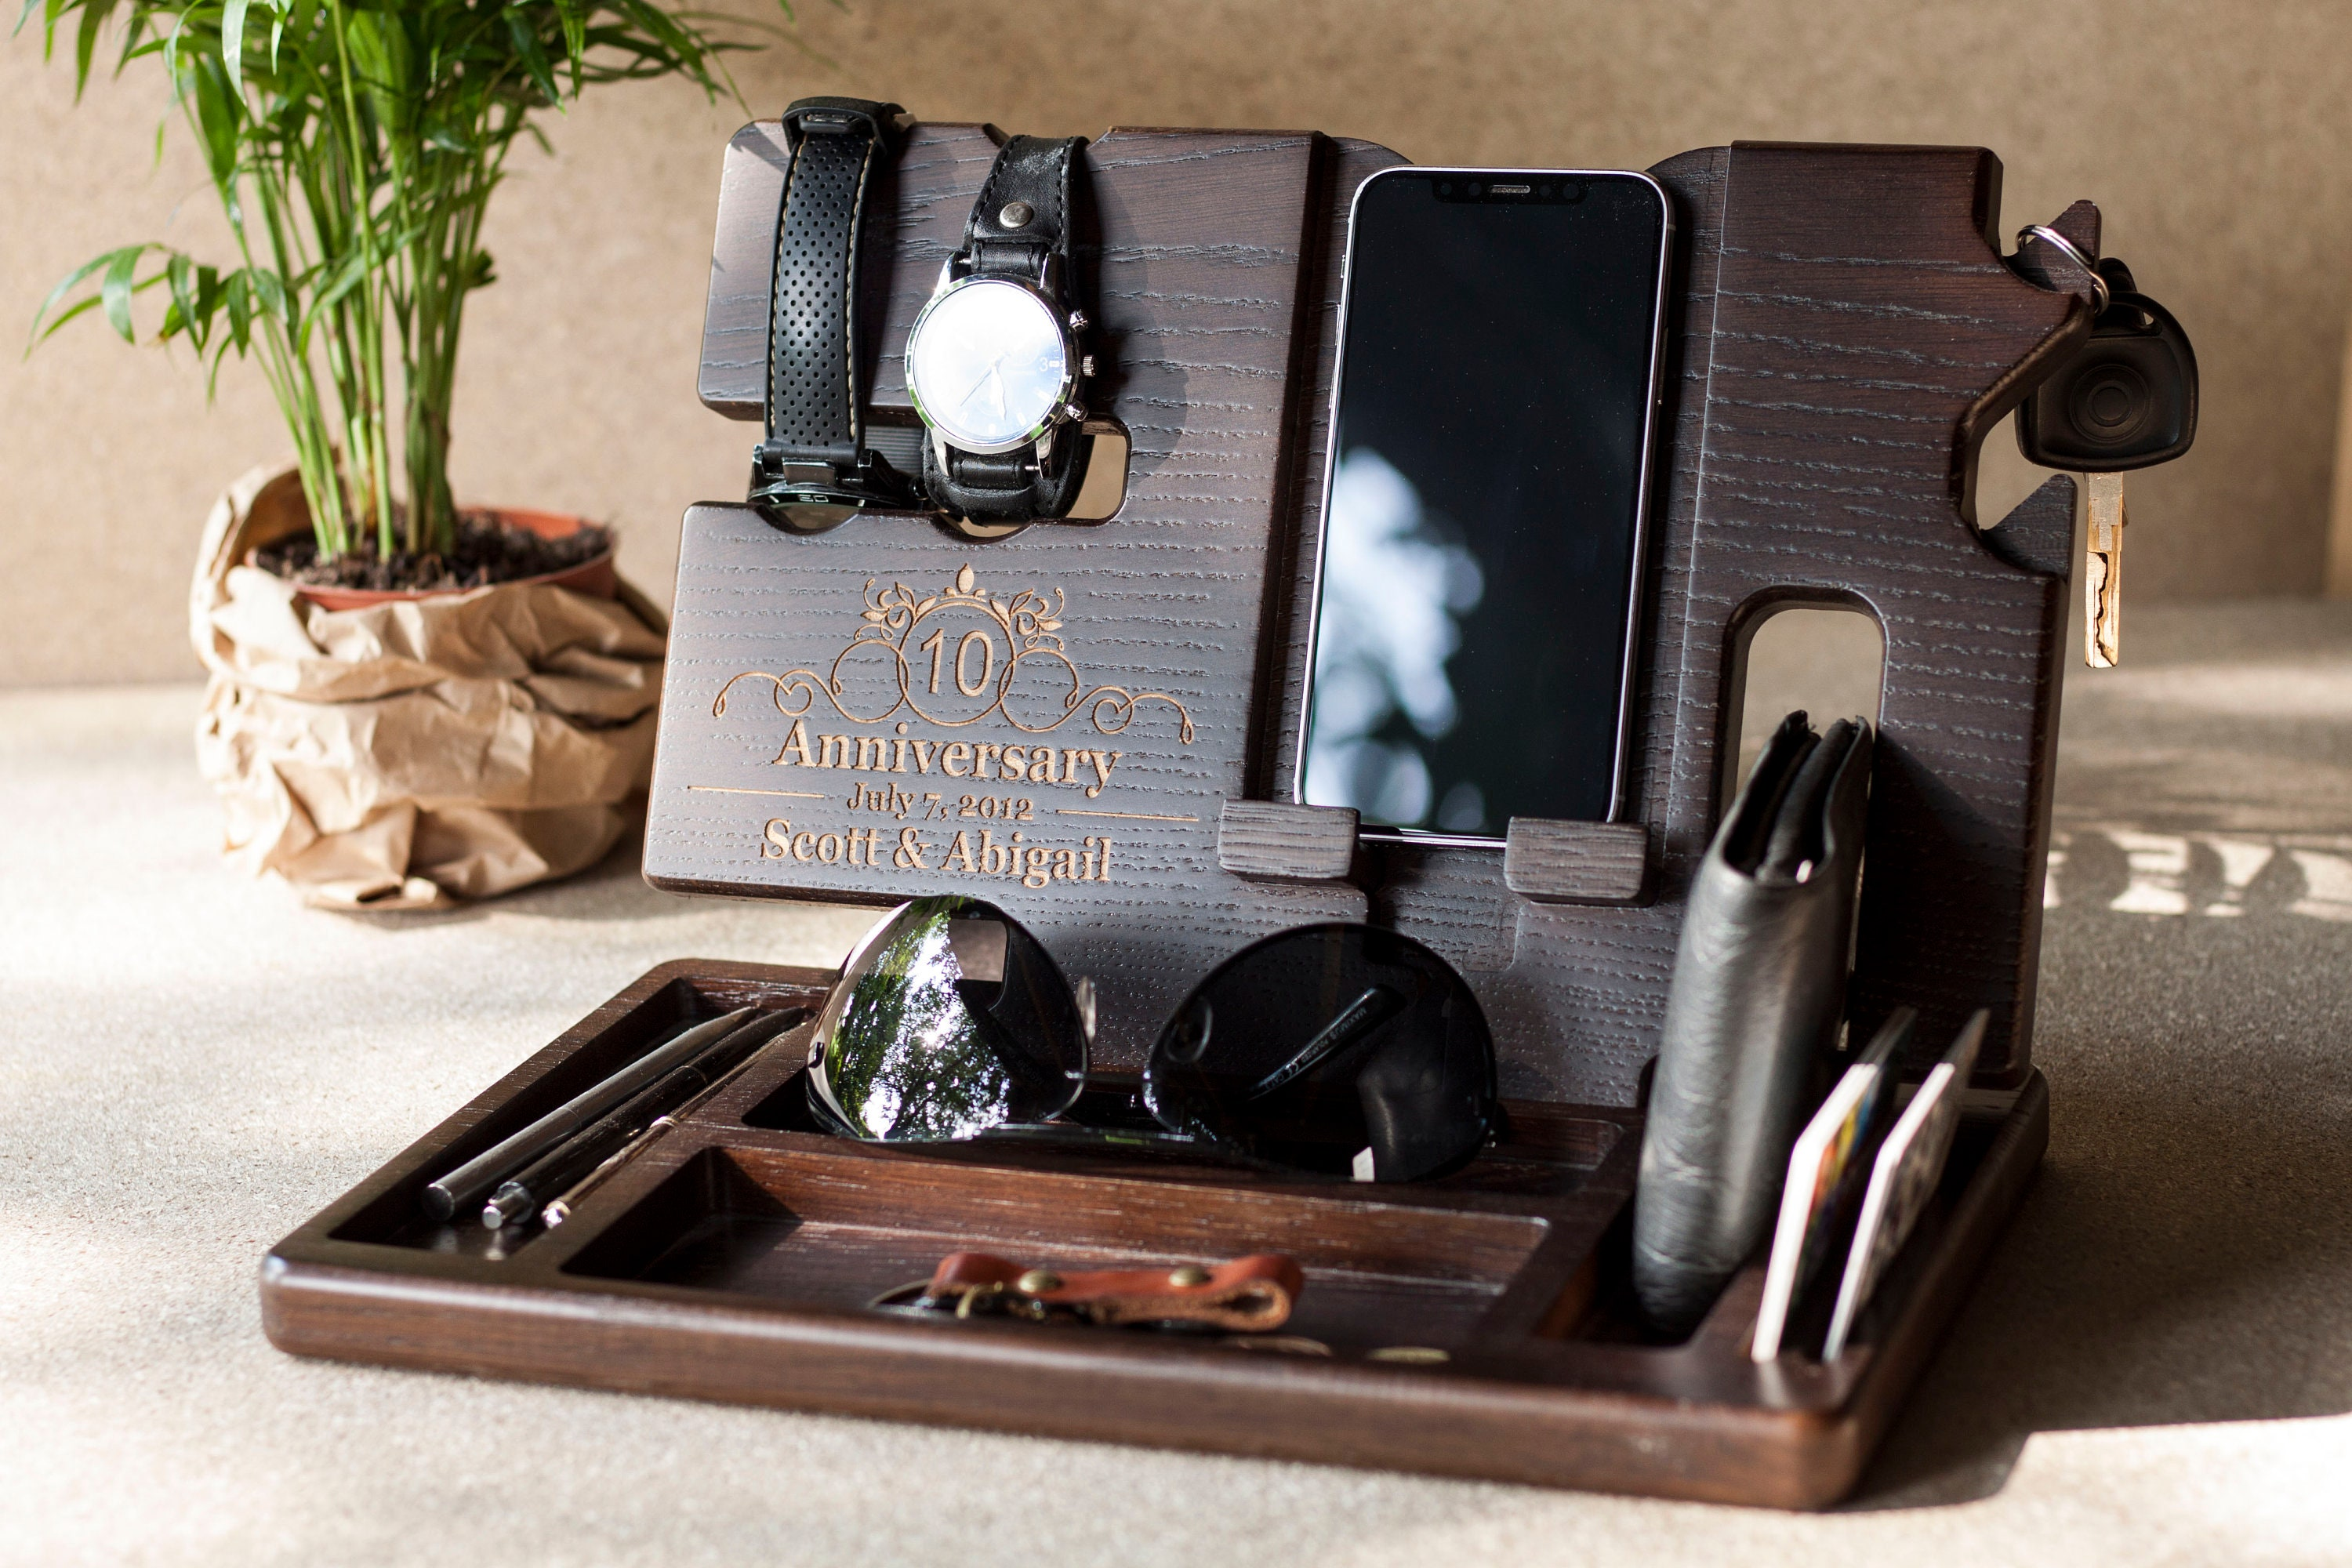 Top birthday gifts for him Creative birthday gifts for him